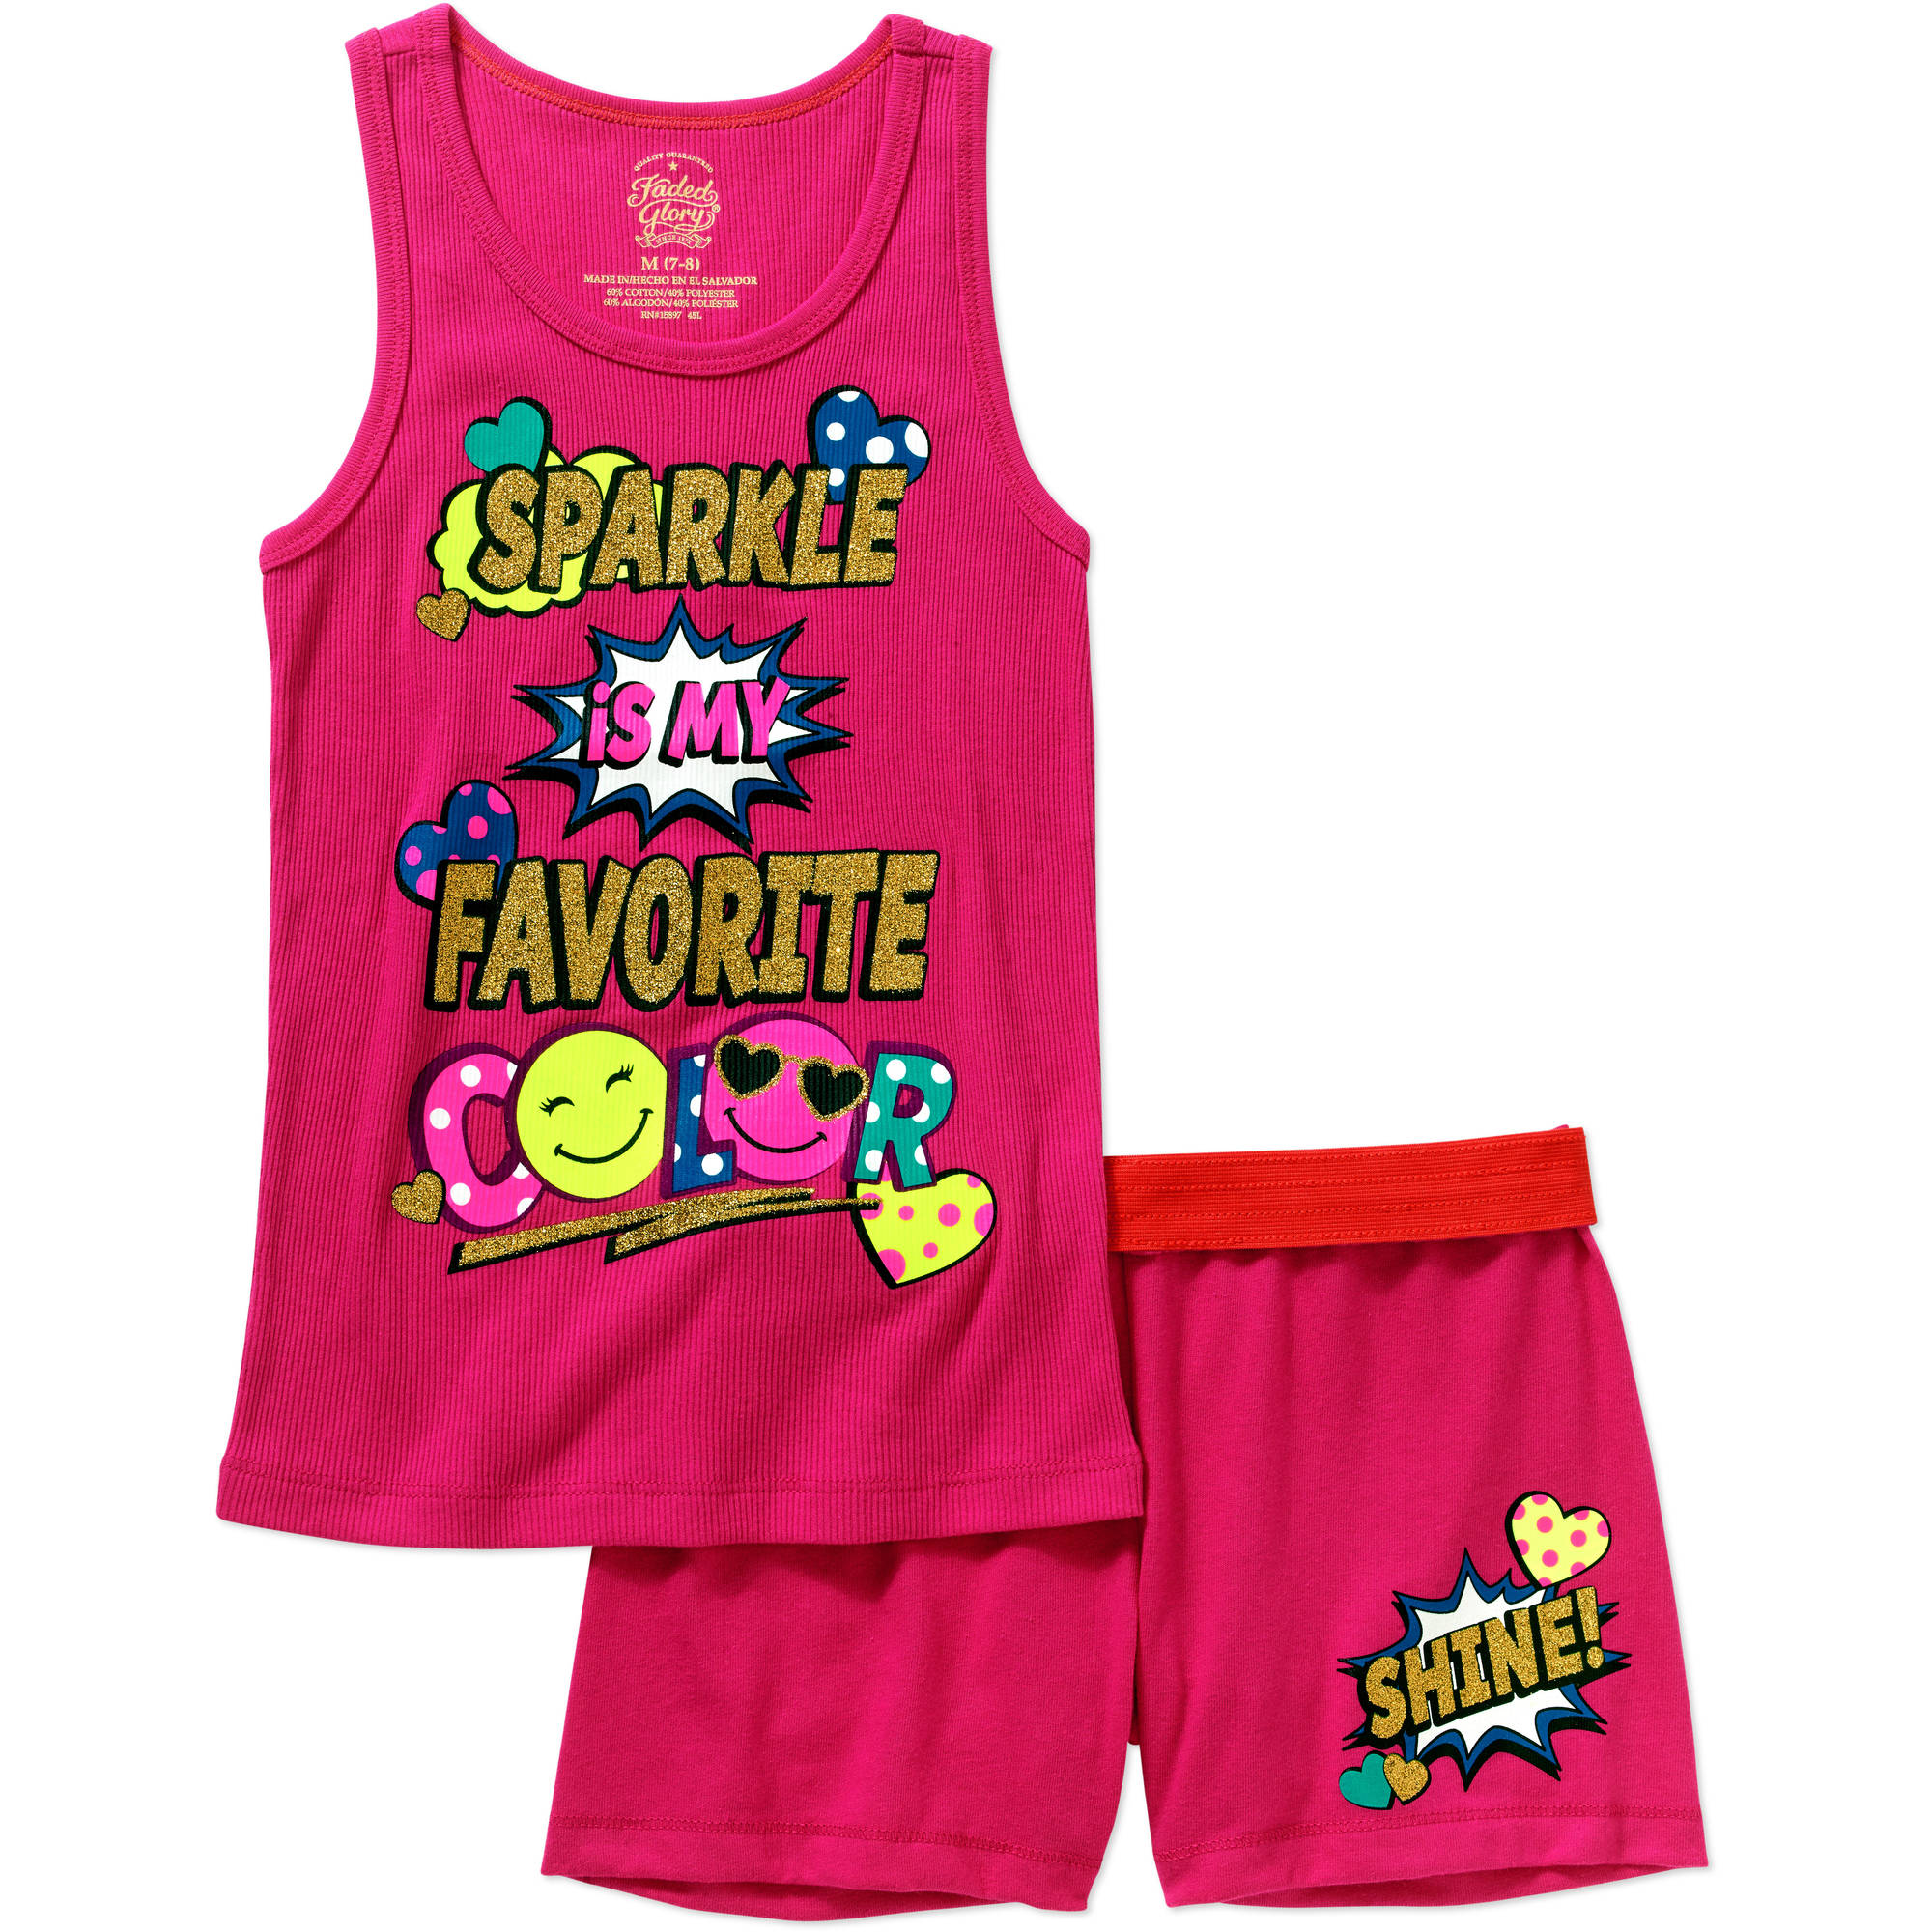 Faded Glory Girls' Graphic Tank and Graphic Shorts Outfit Set